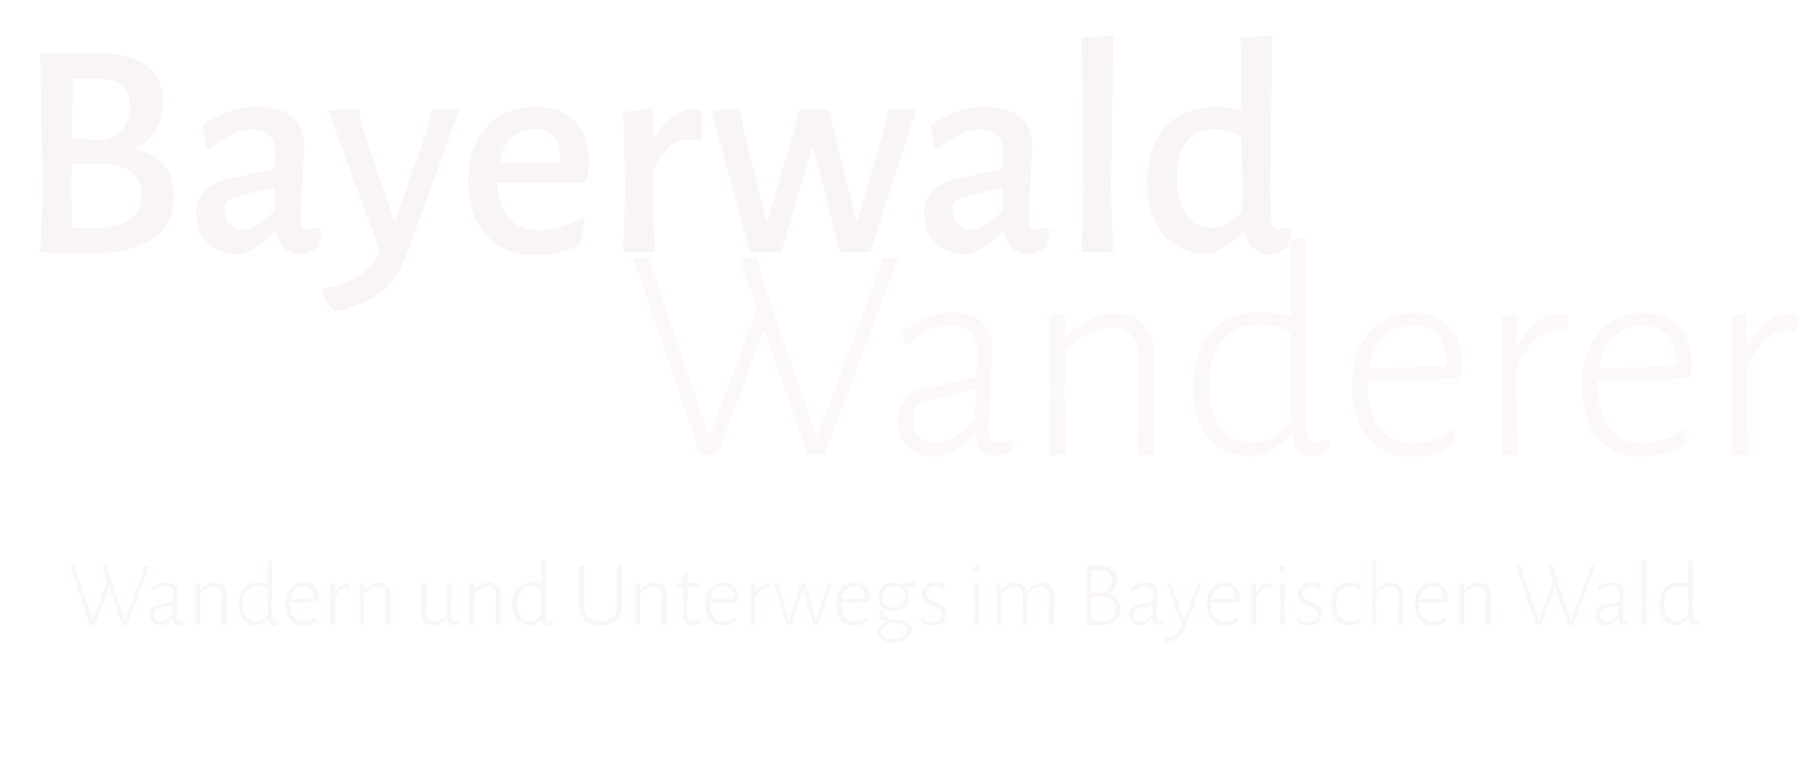 Bayerwald-Wanderer